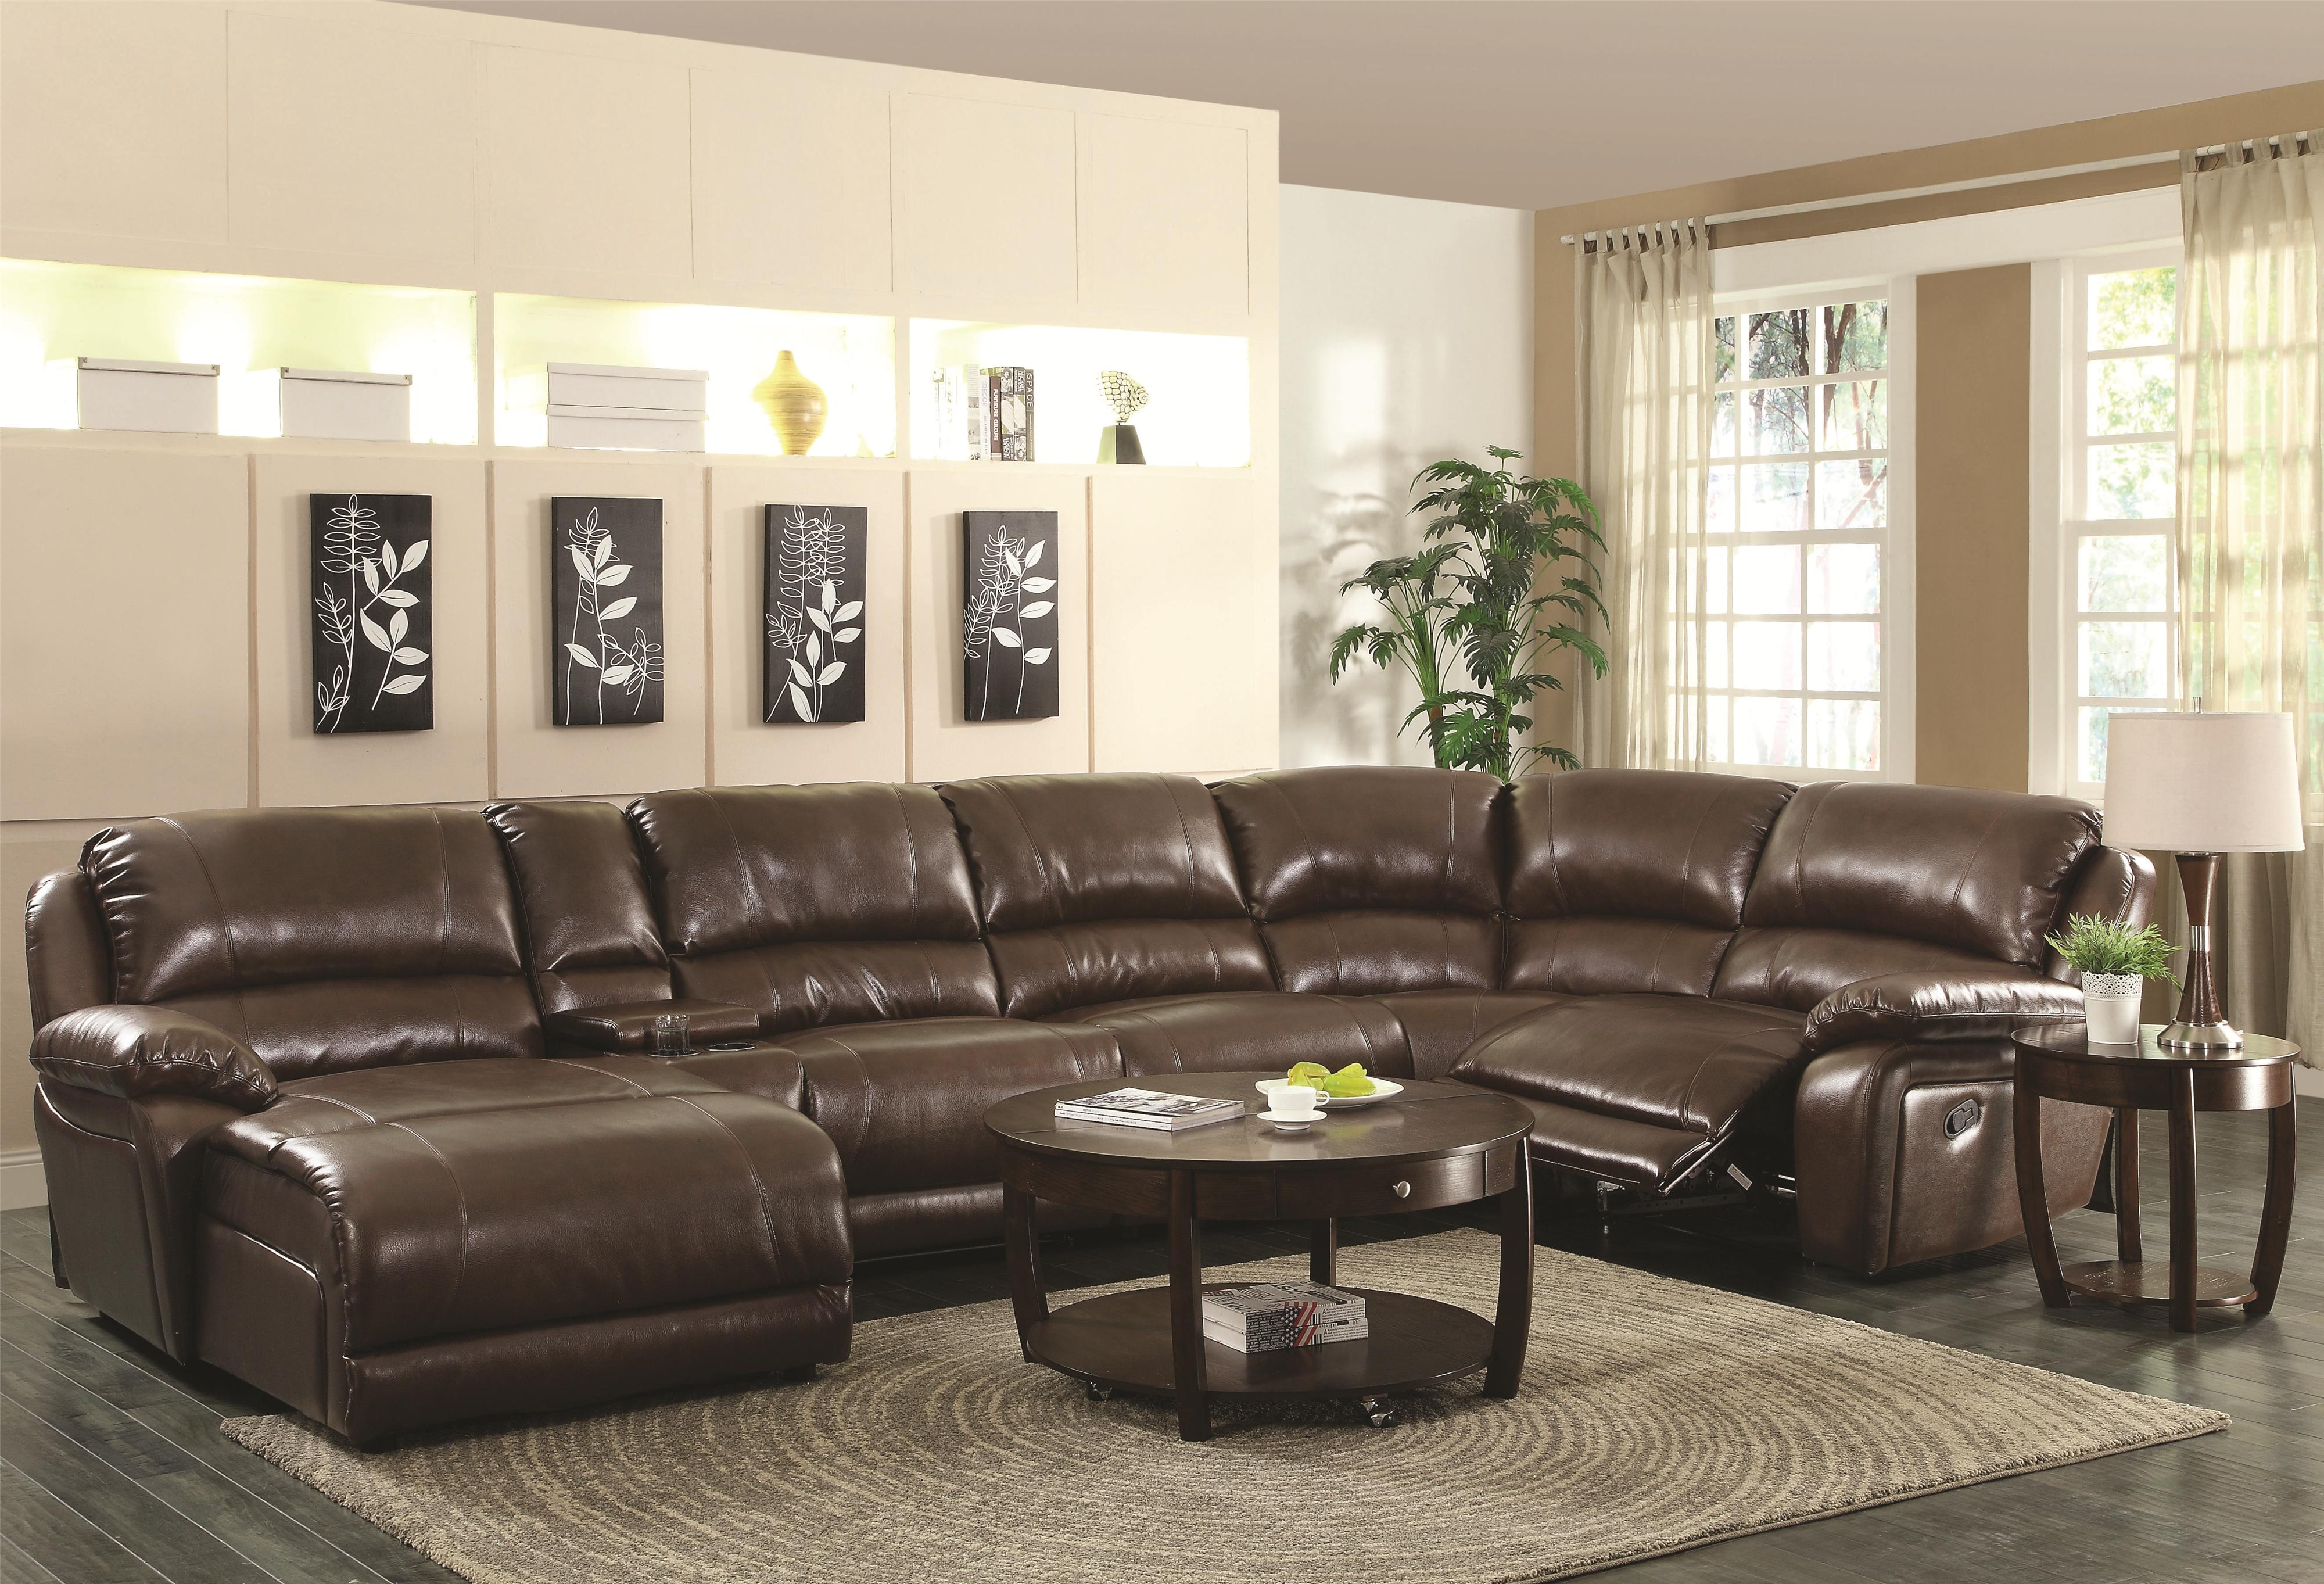 mackenzie chestnut 6 piece sectional